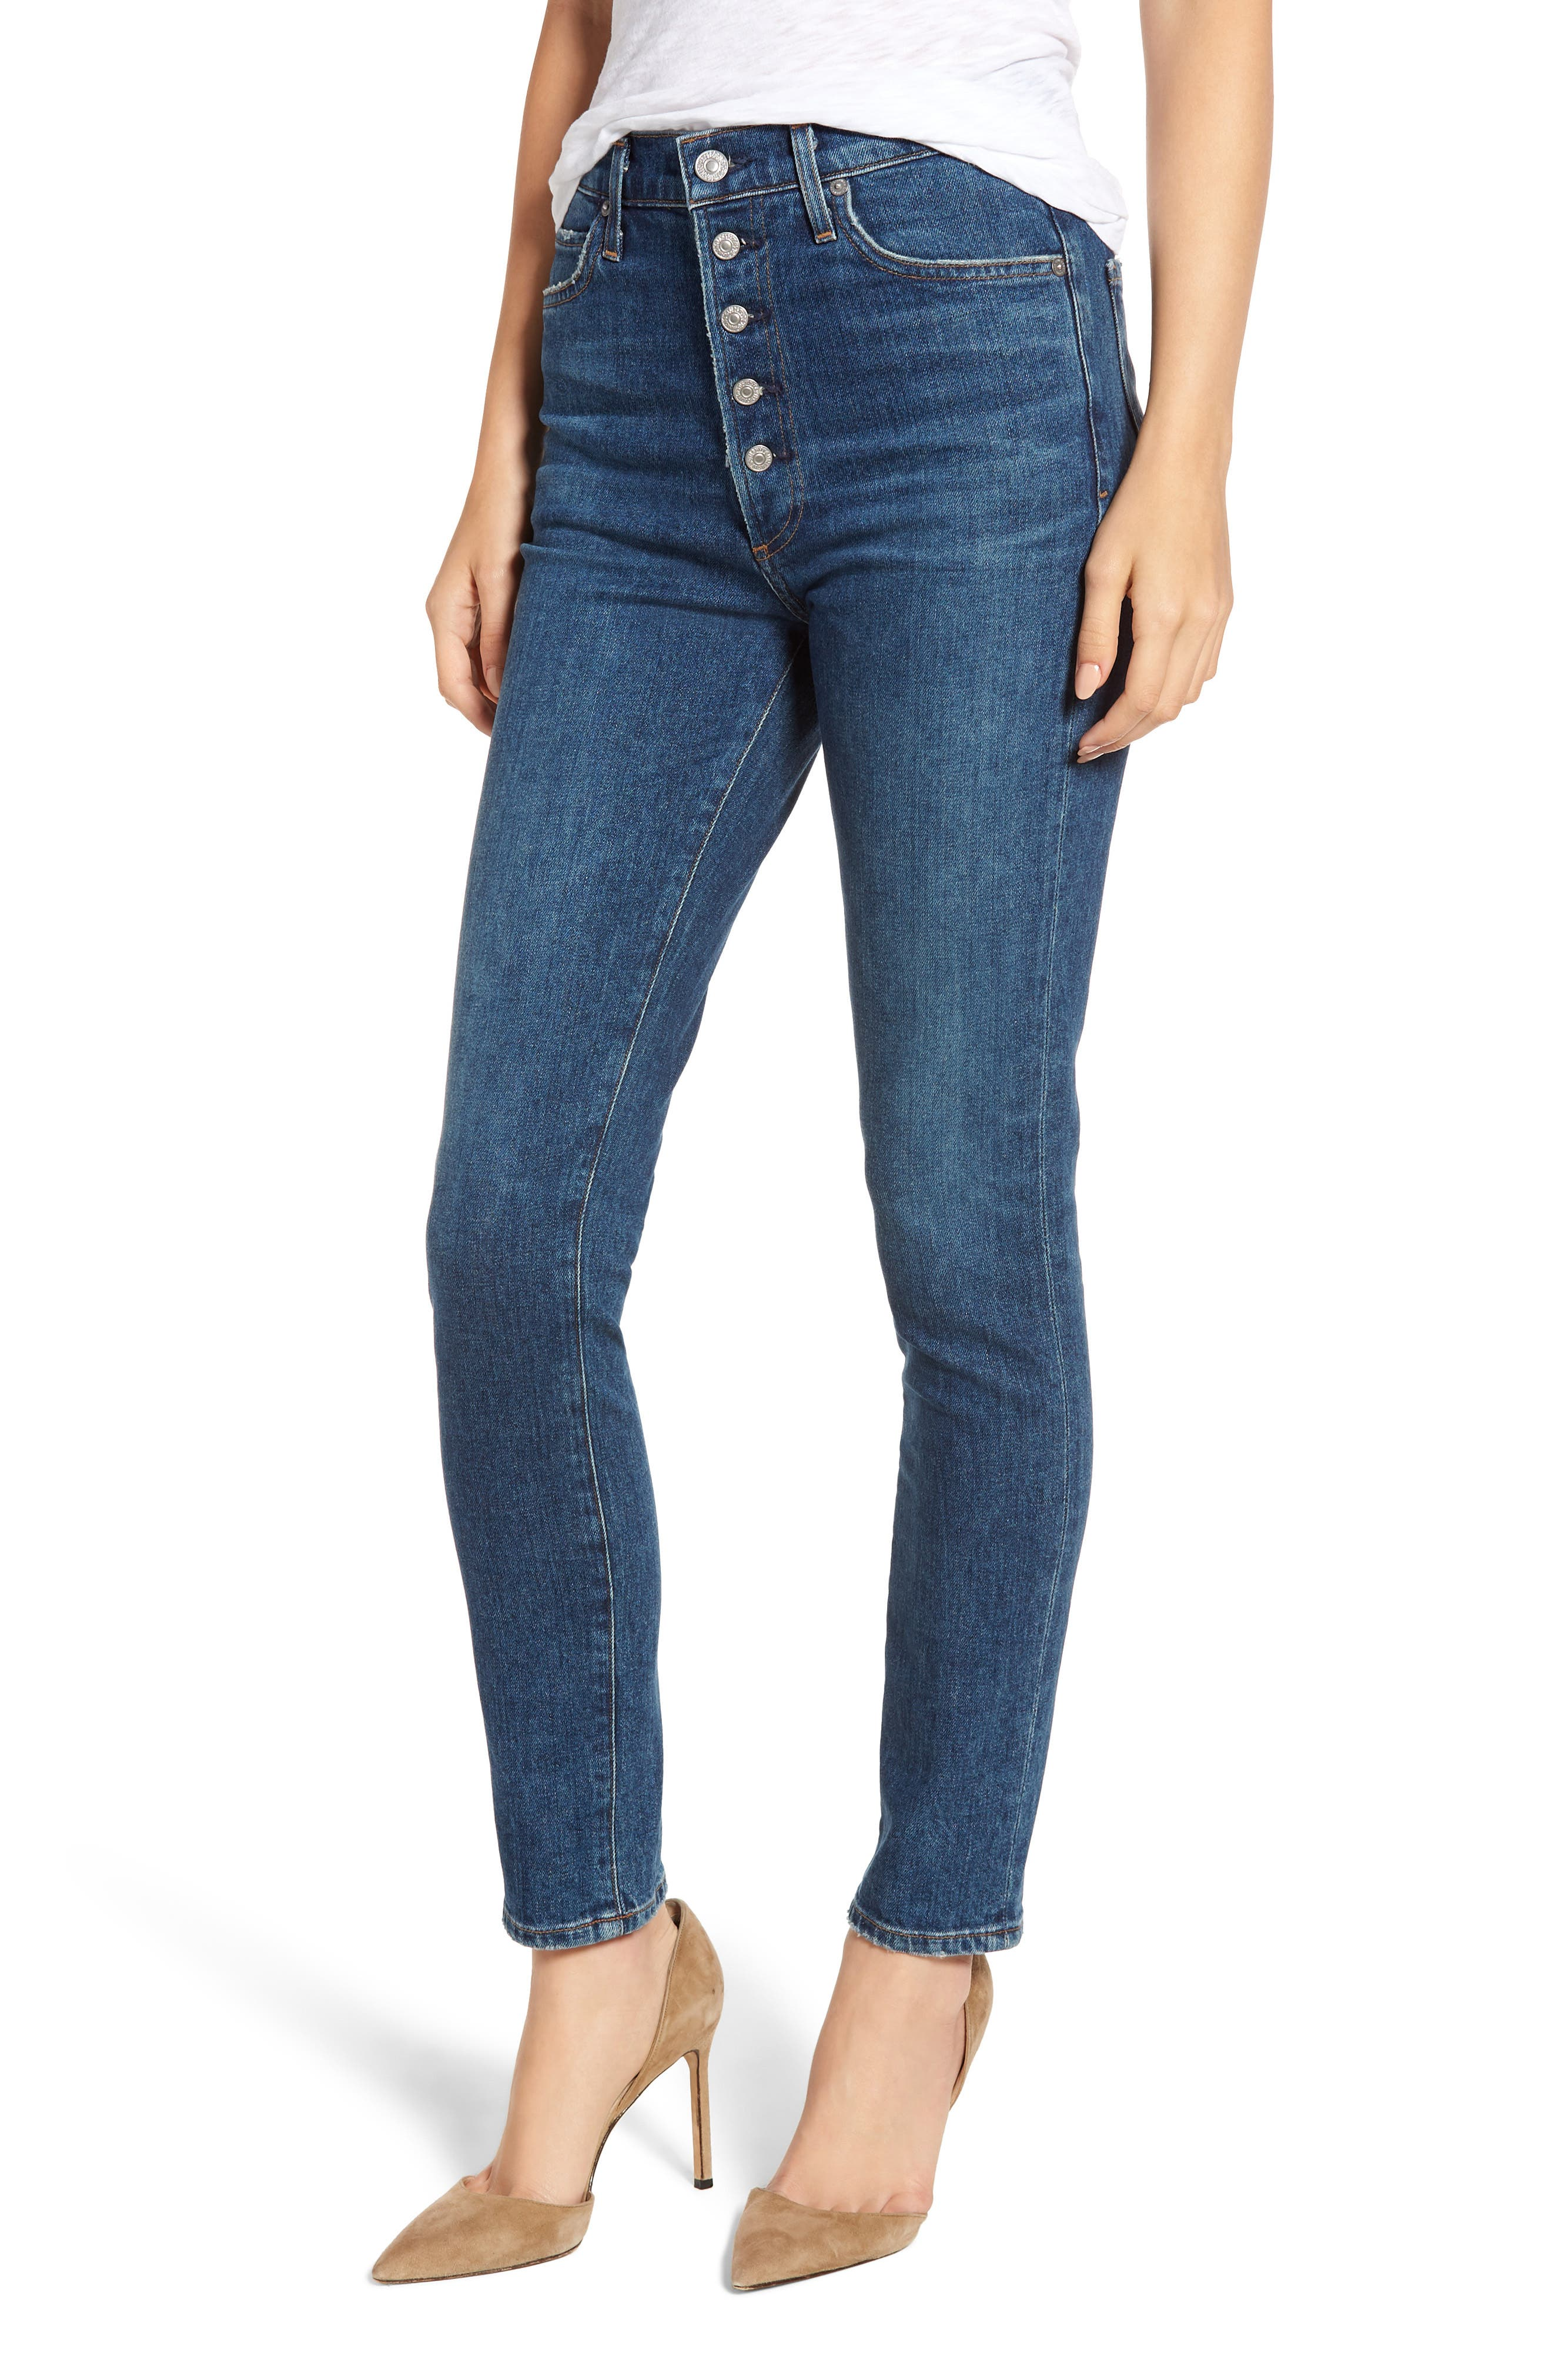 CITIZENS OF HUMANITY Olivia High Waist Slim Jeans, Main, color, CIRCA